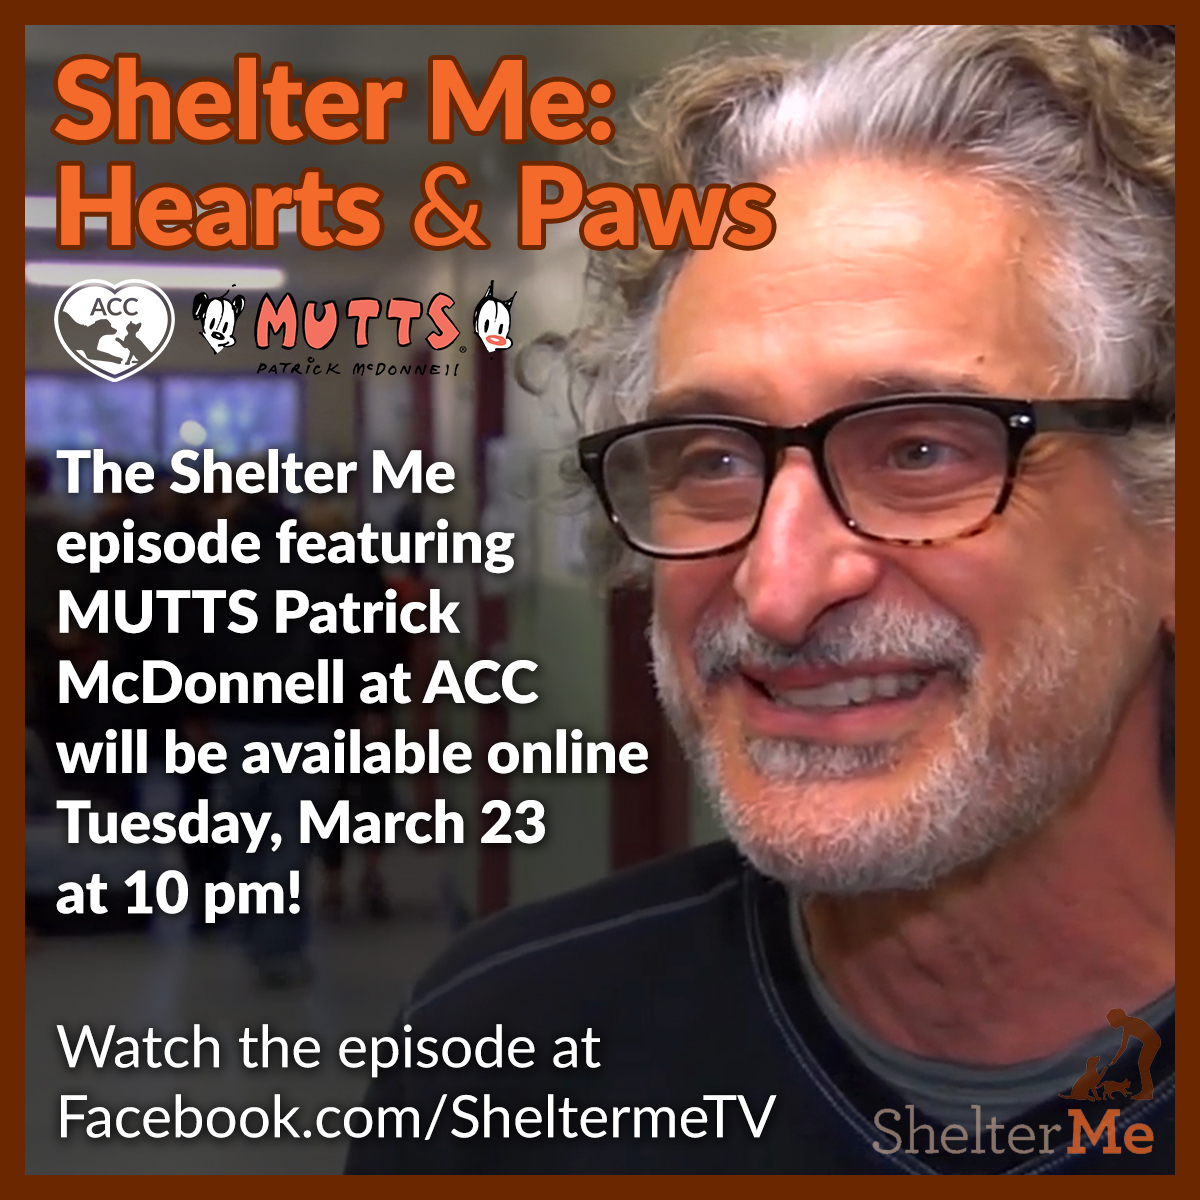 ACC Mutts Shelter Me